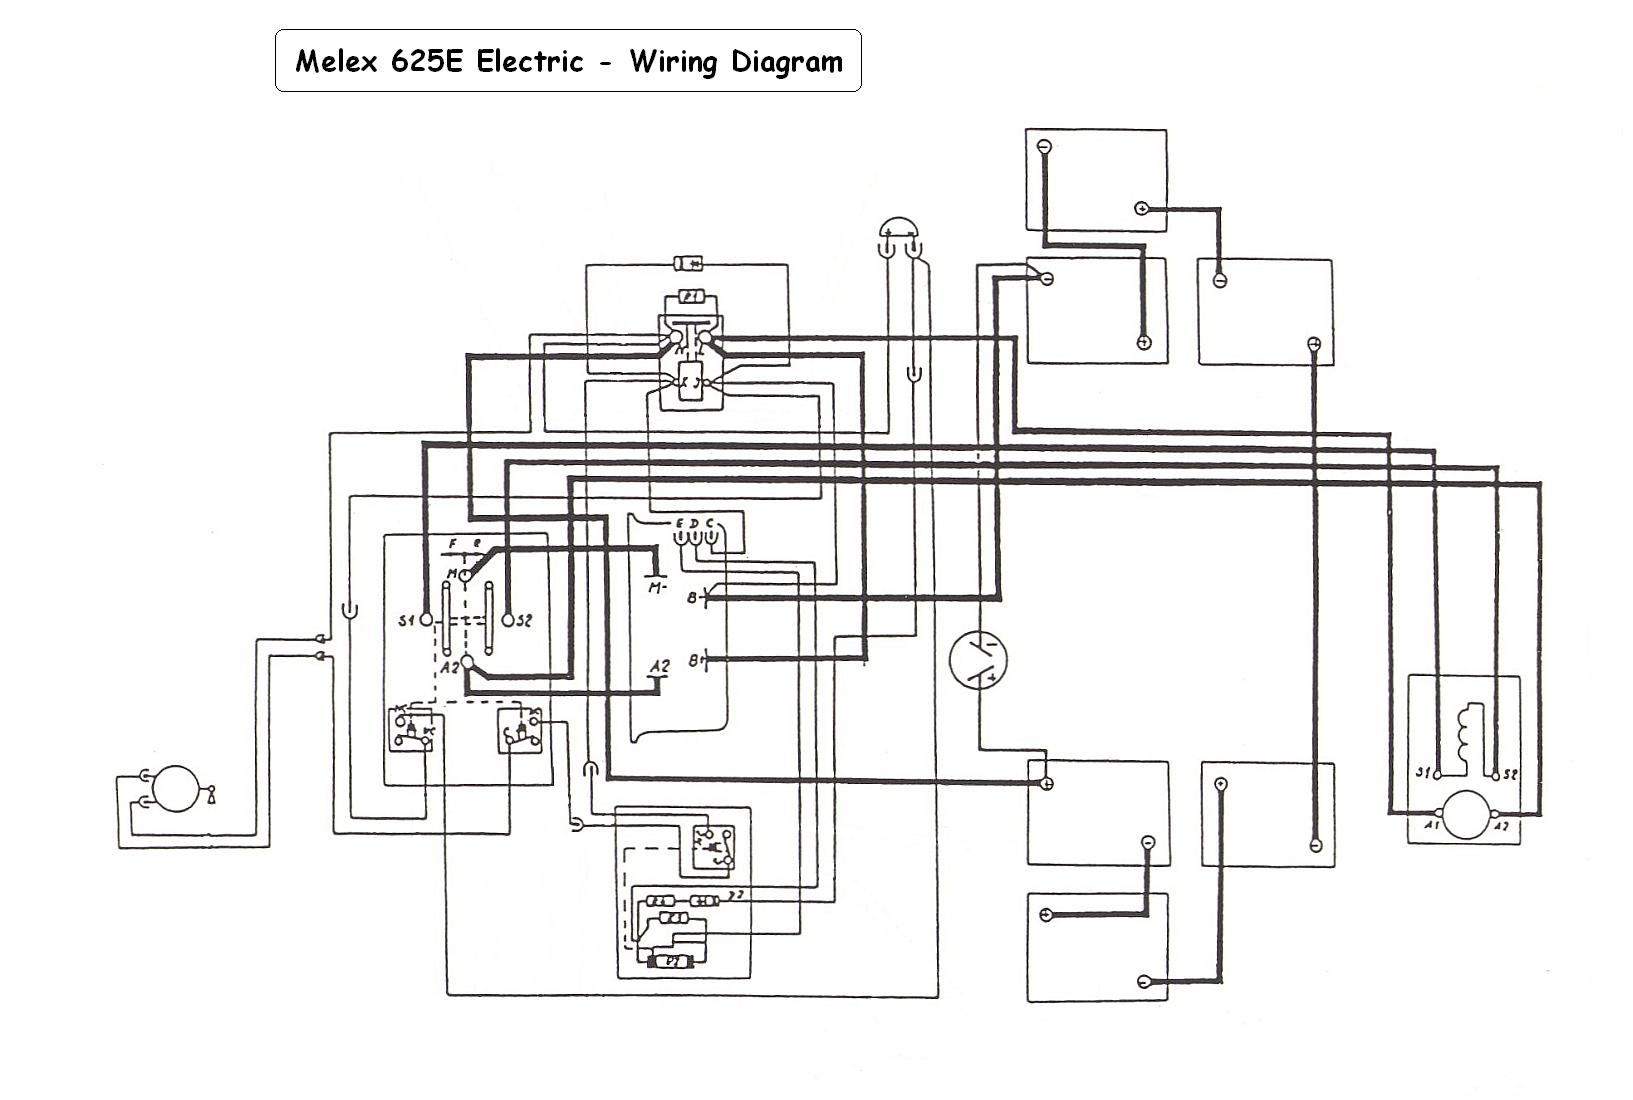 Melex625E_Wiring_Diagram vintagegolfcartparts com battery wiring diagram melex golf cart at bakdesigns.co